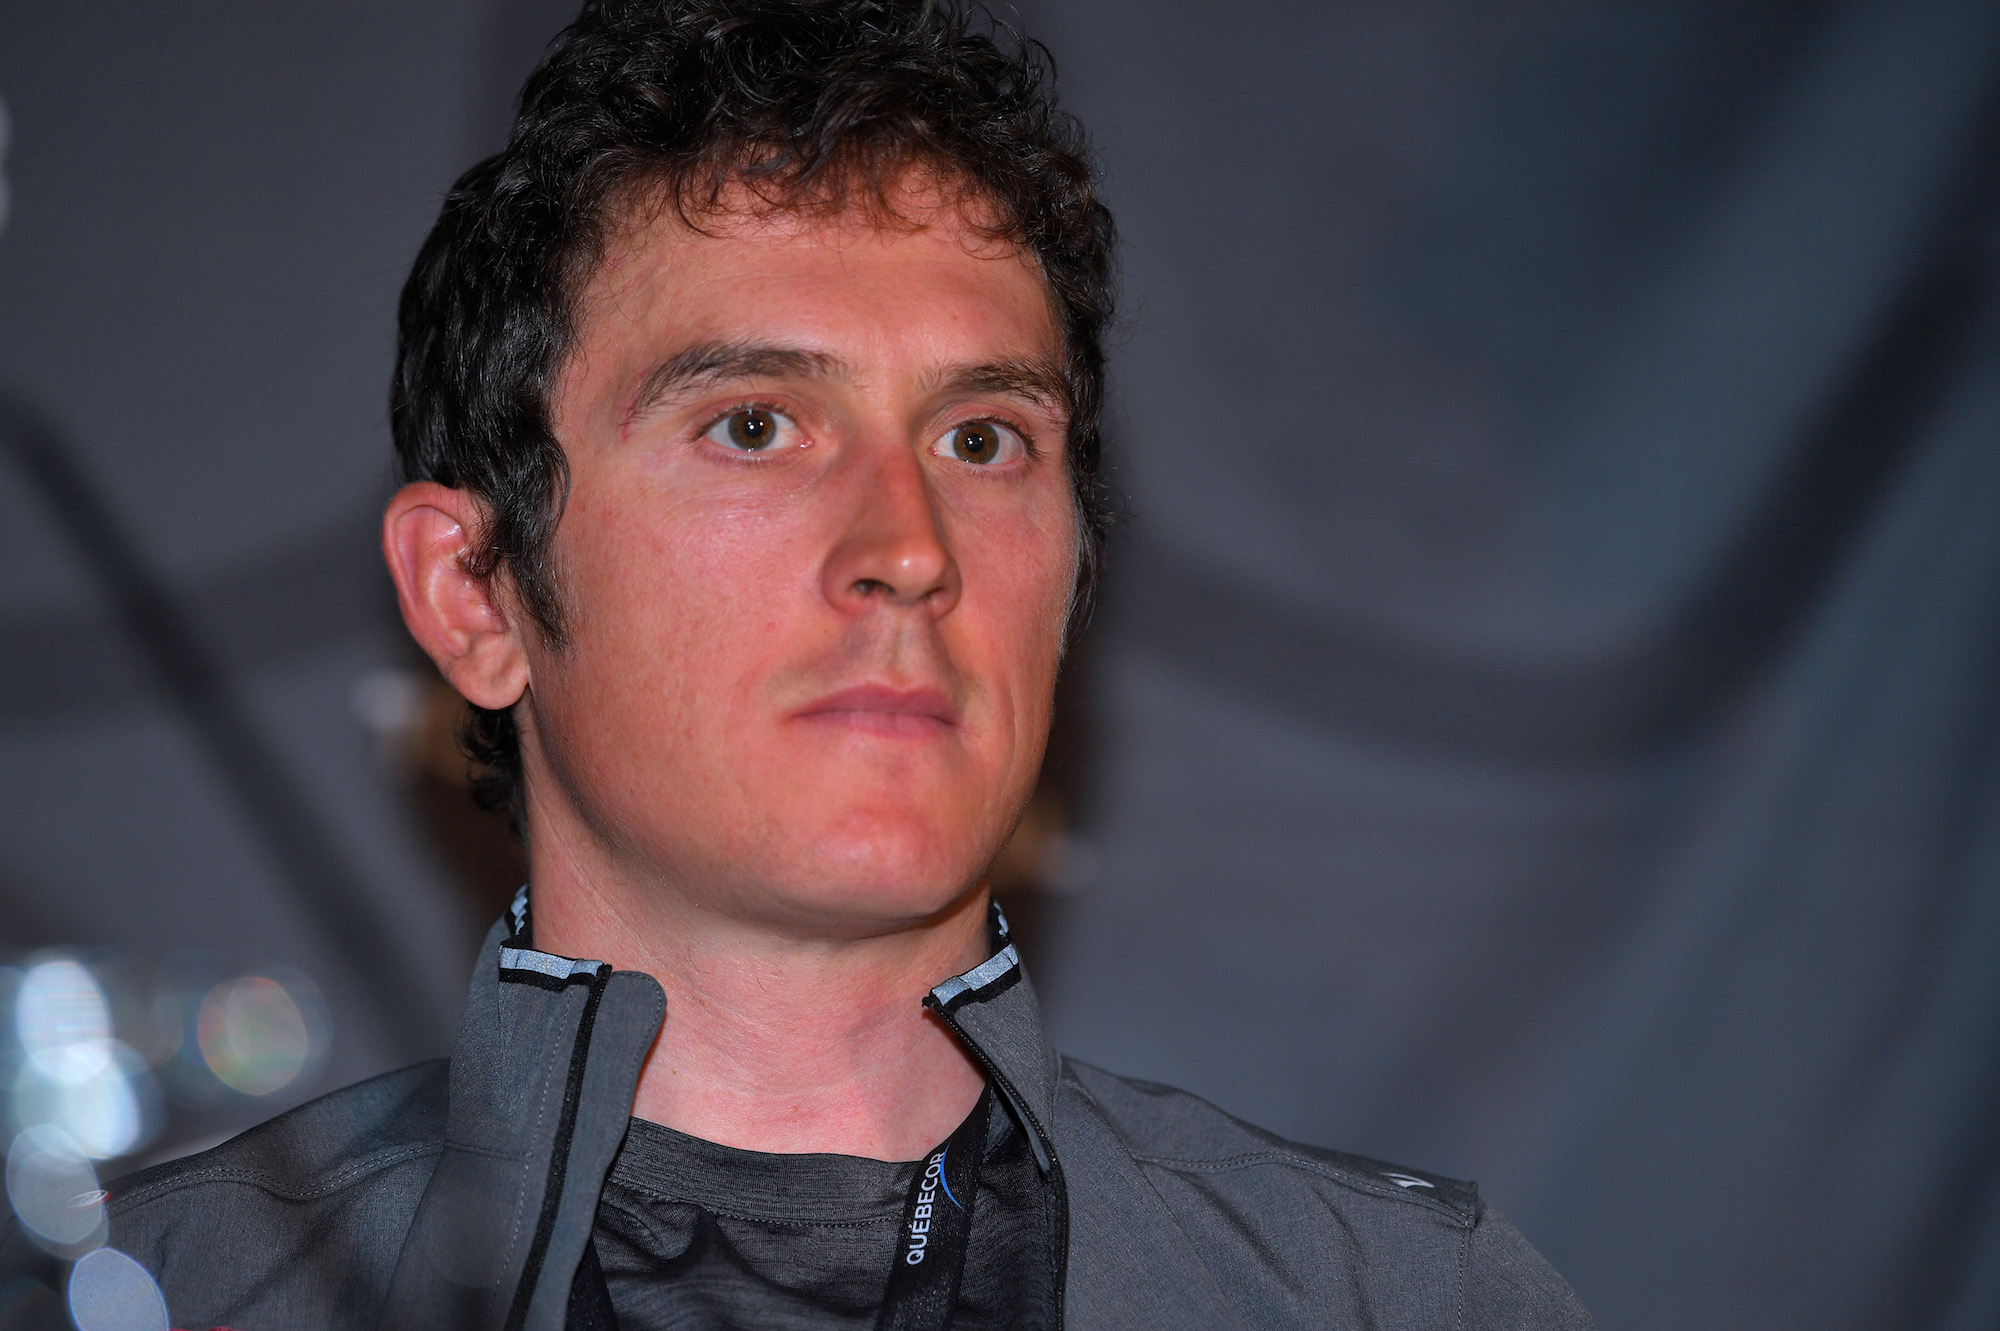 Geraint Thomas says he wants to give the Tour de France 'one more good go'